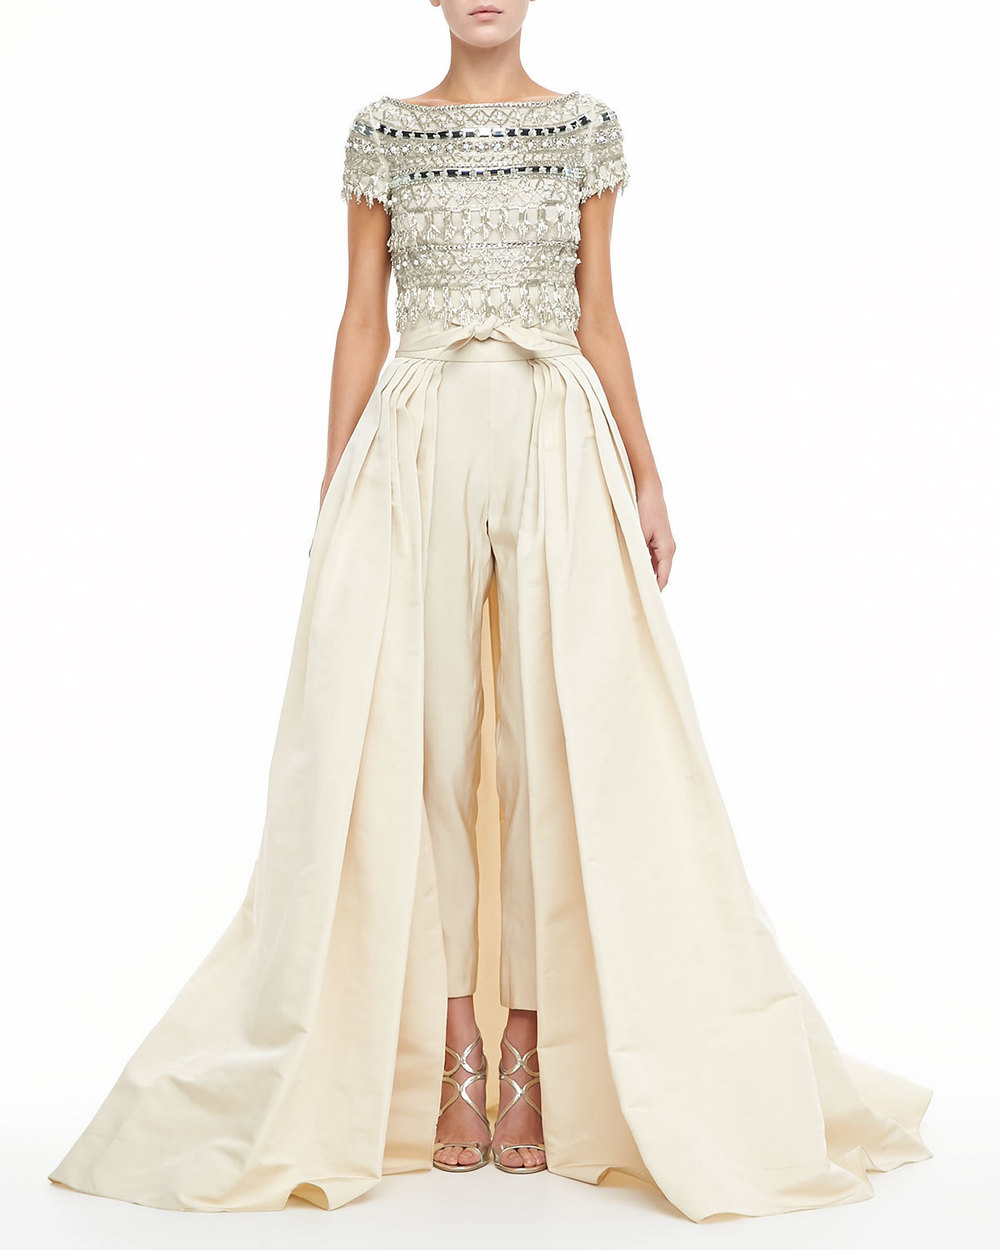 Naeem Khan ball skirt with pants, available at  Bergdorf Goodman